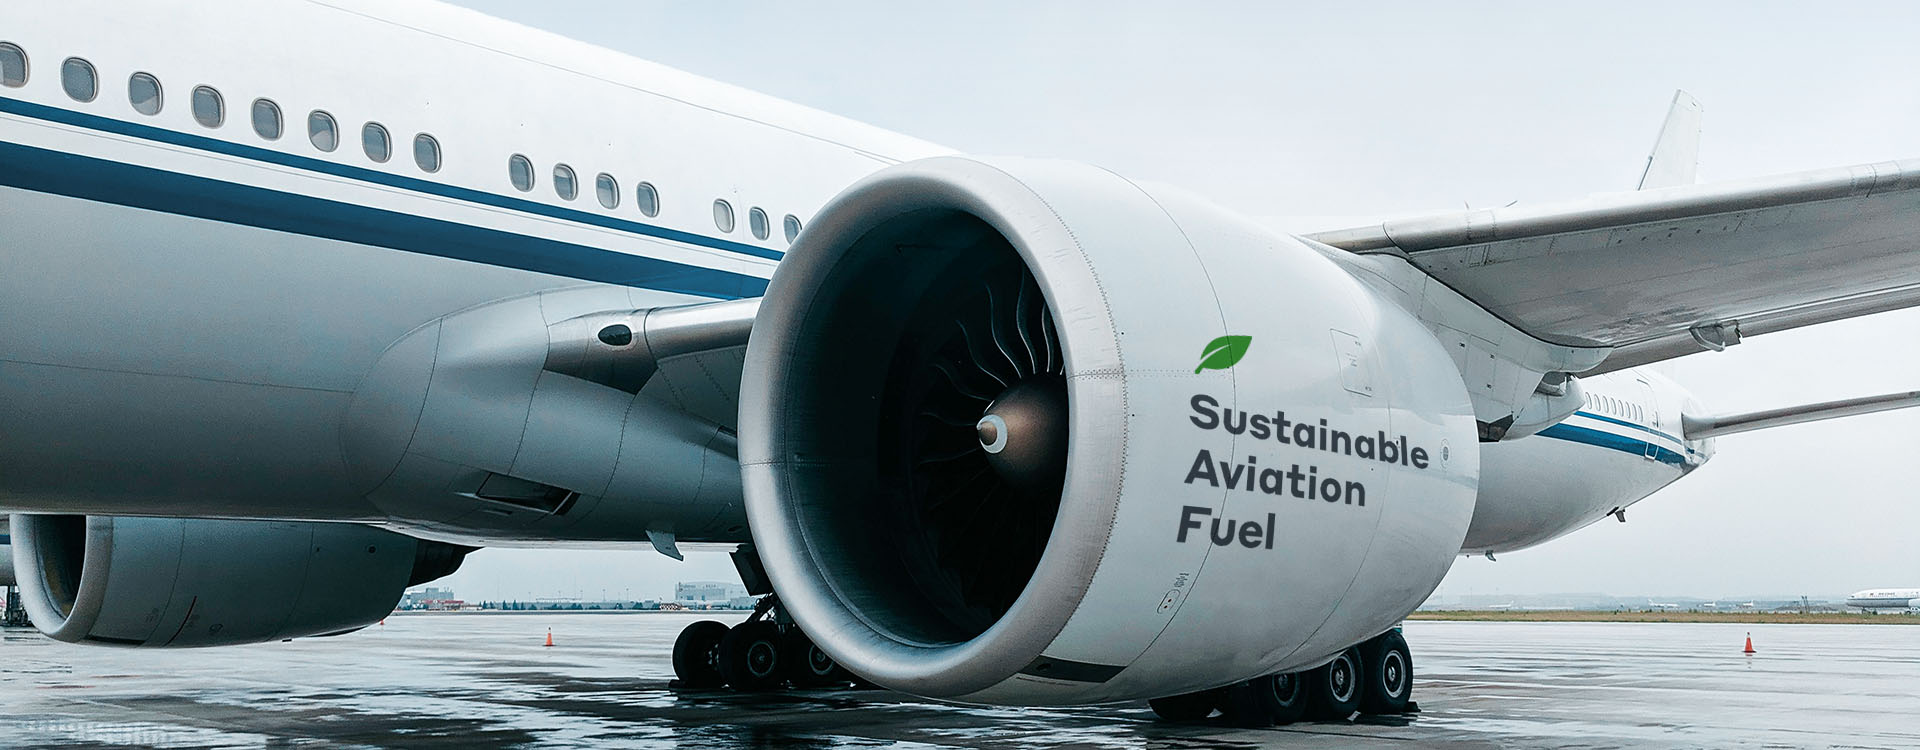 bnr-web-aviation-biofuel